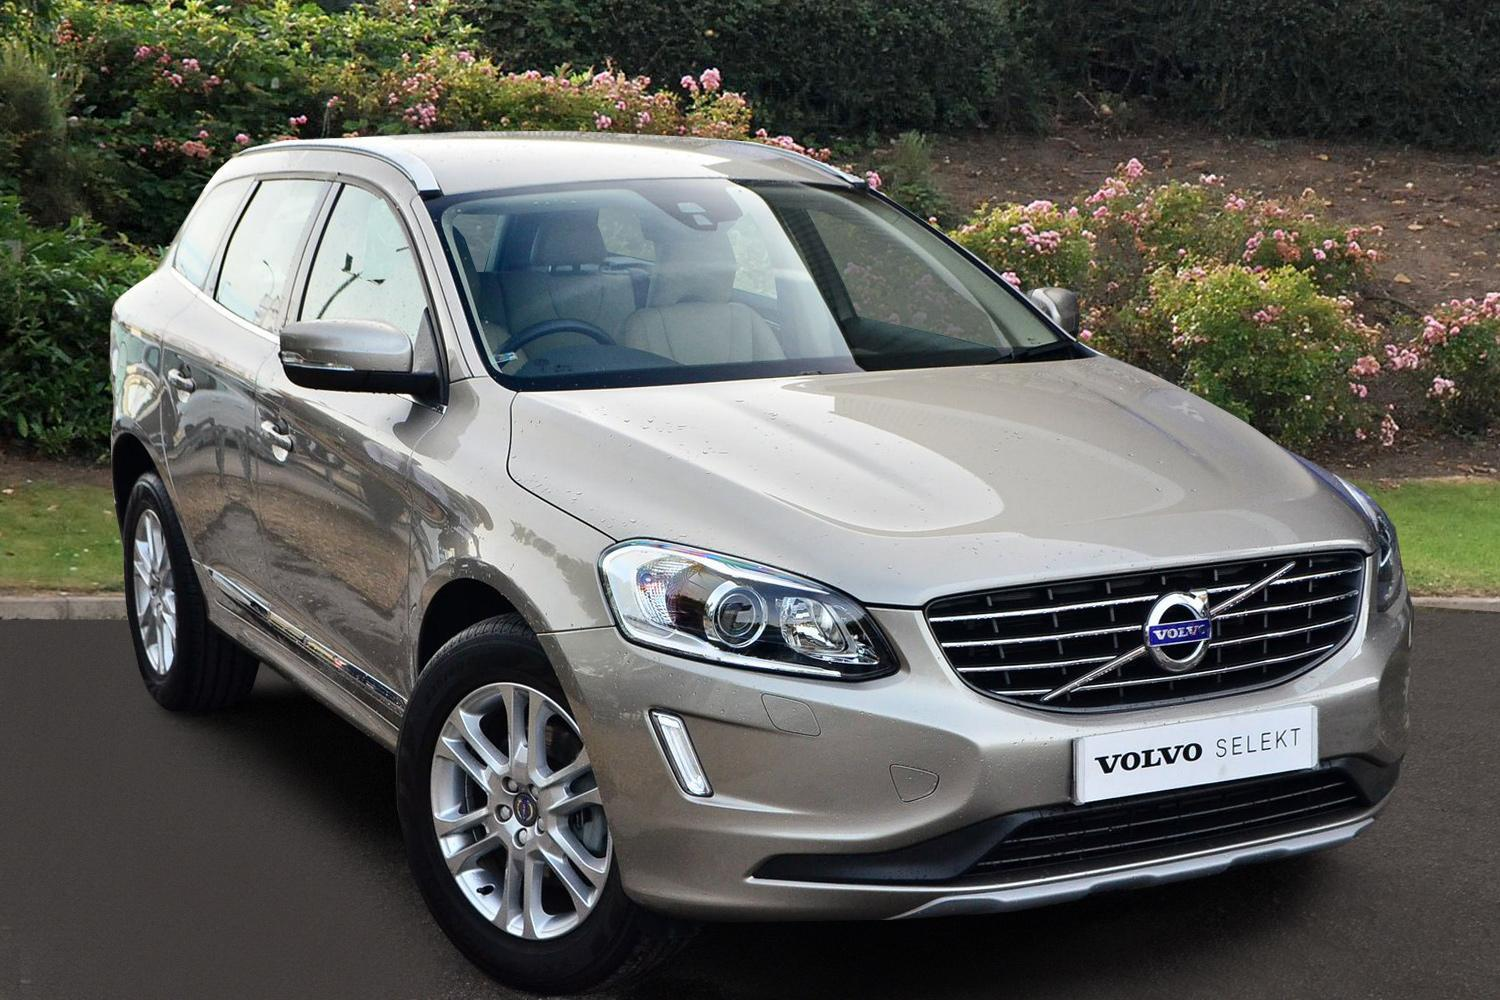 used volvo xc60 d4 190 se lux nav 5dr diesel estate for sale bristol street motors. Black Bedroom Furniture Sets. Home Design Ideas